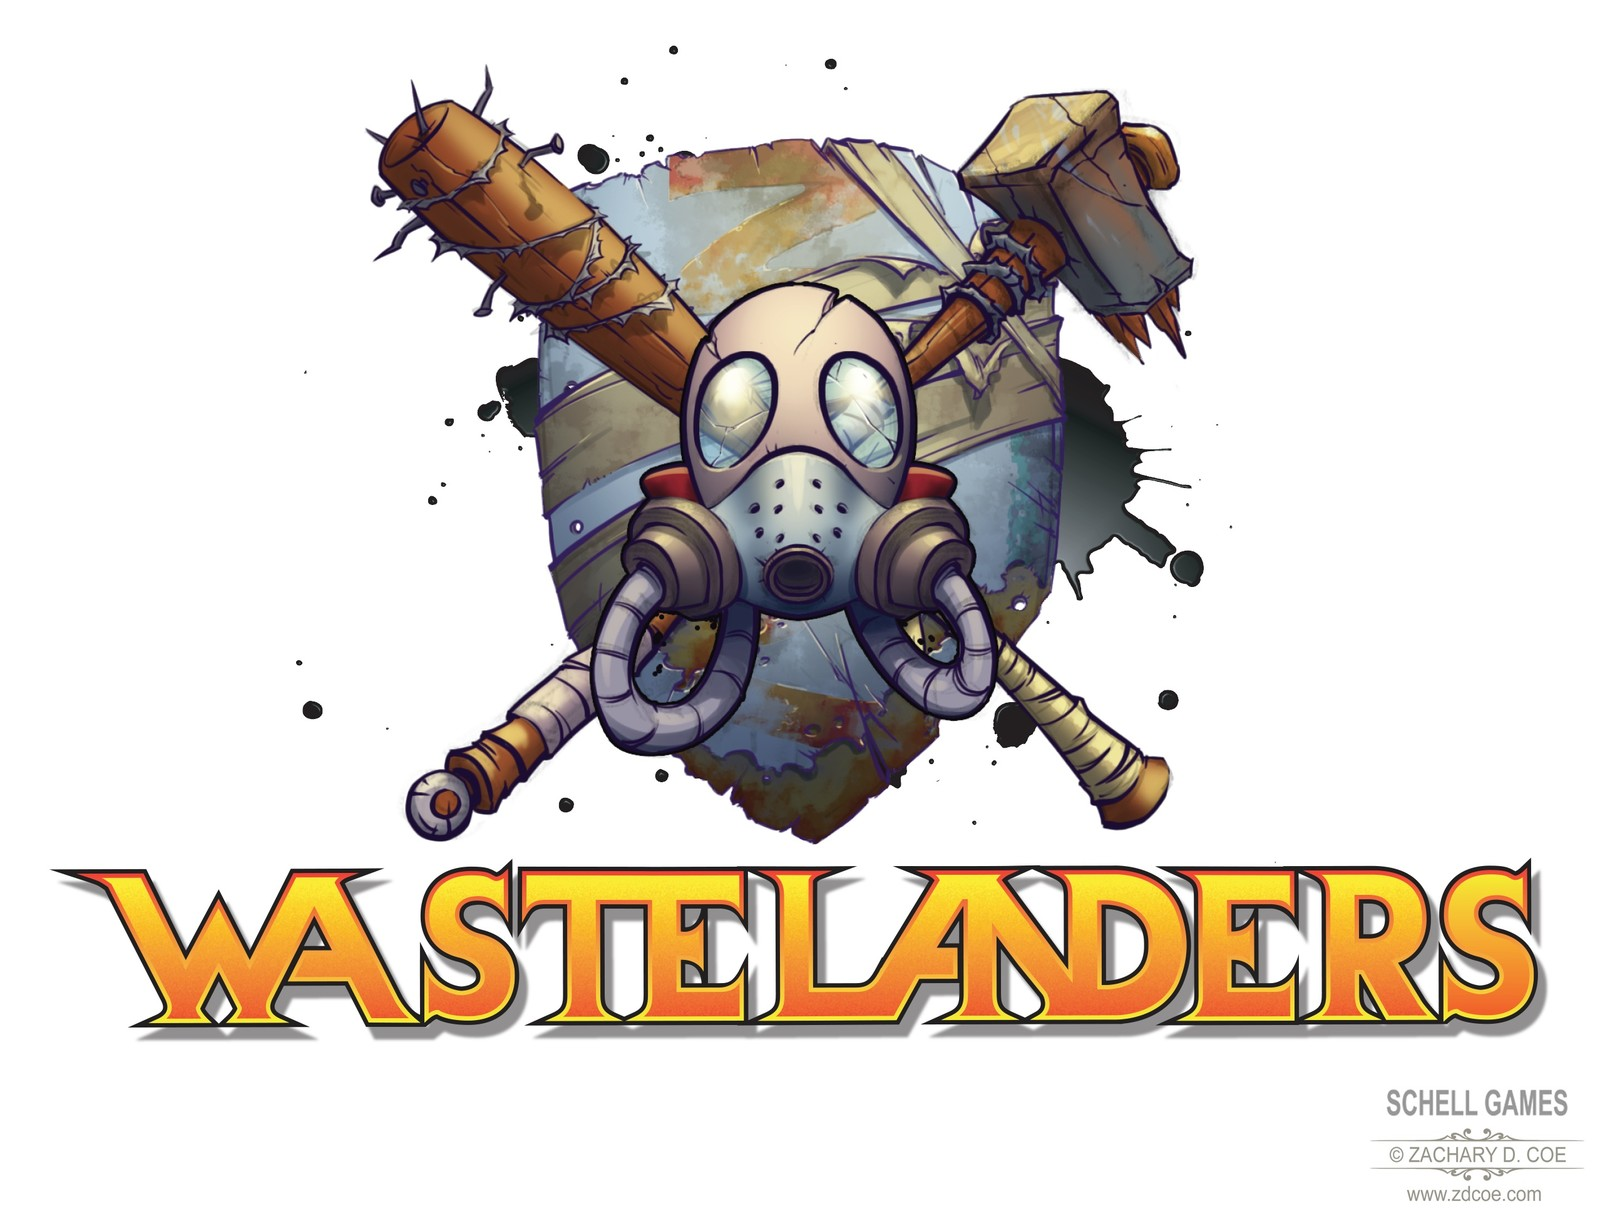 WASTELANDERS LOGO Stacked Final by Zachary D. Coe